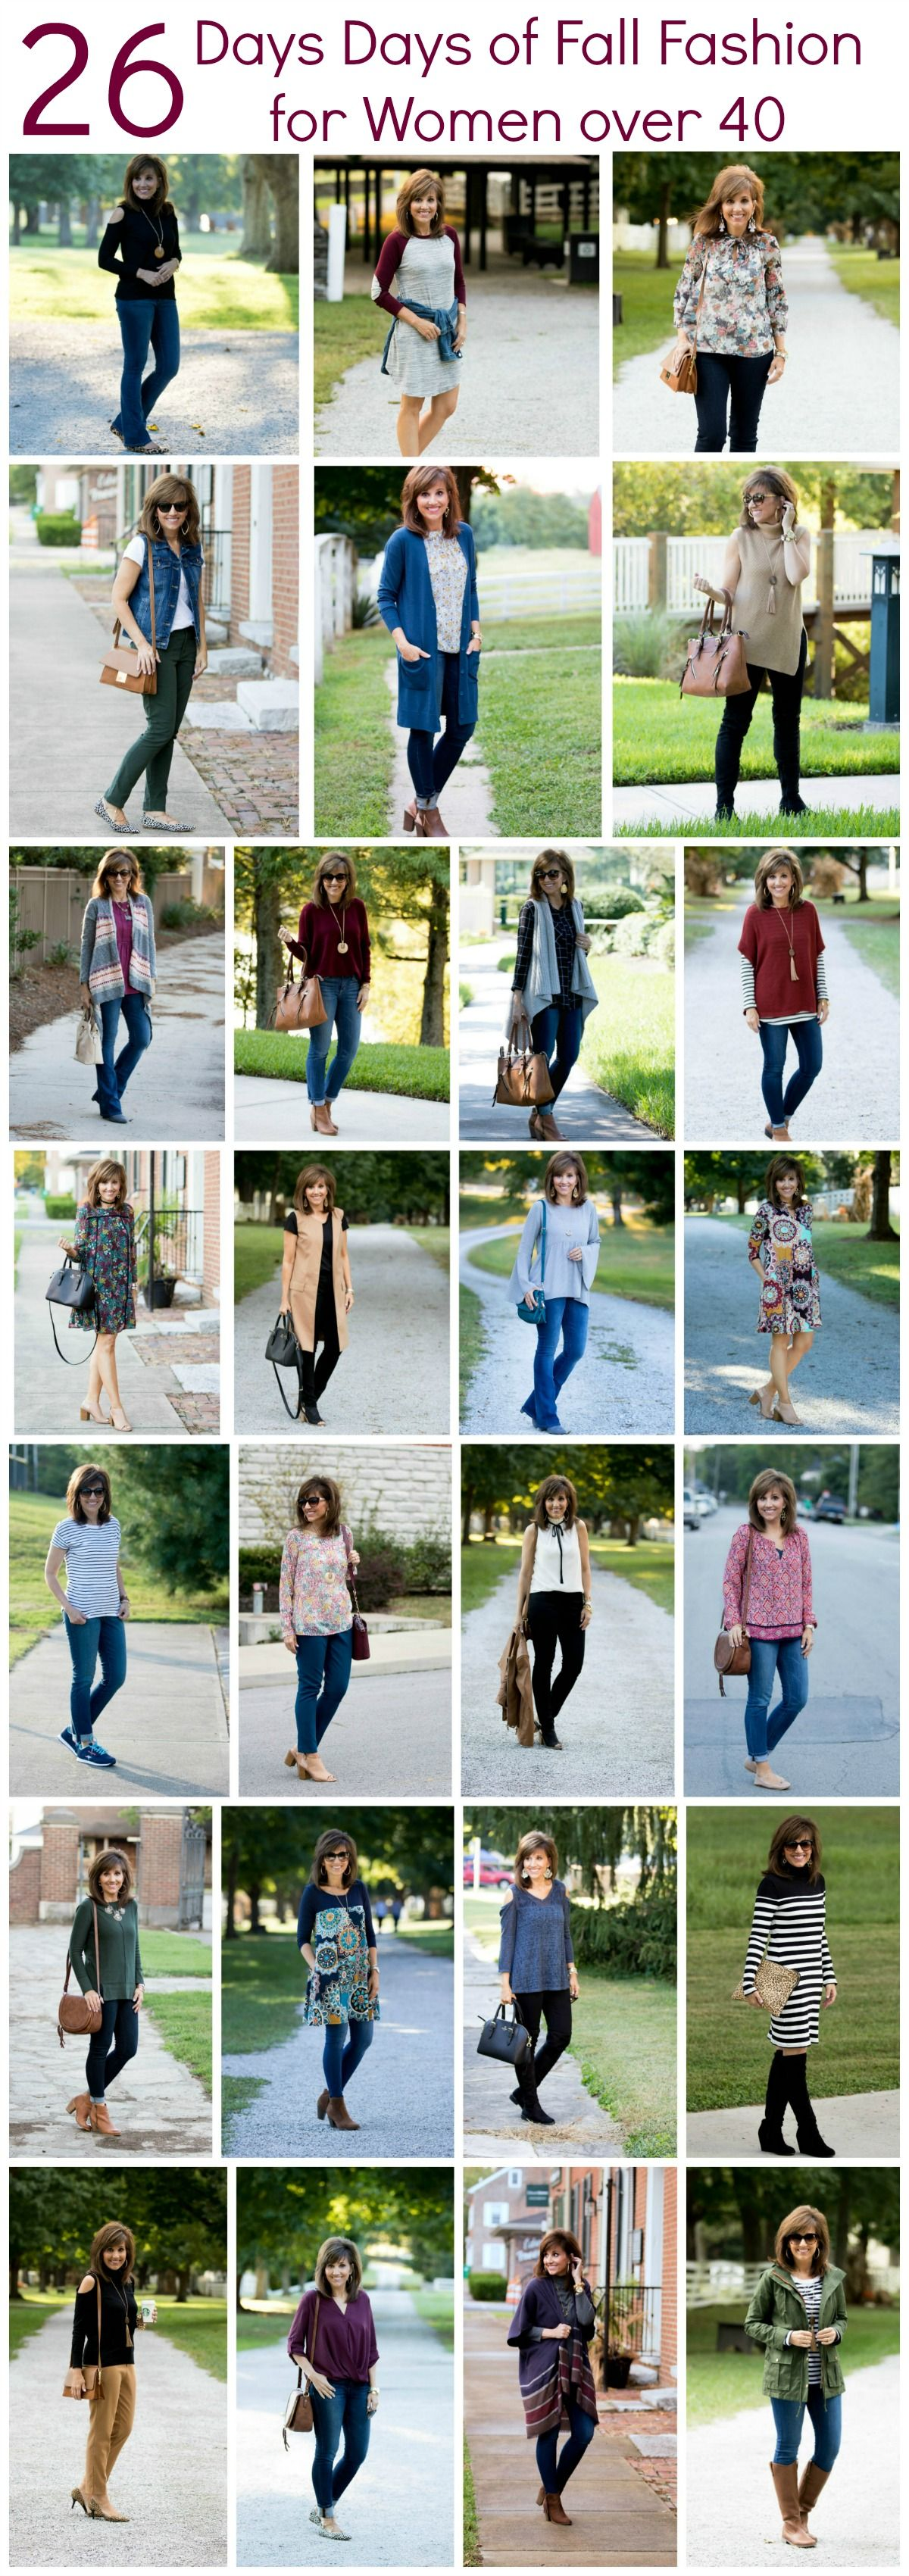 26 Days of Fall Fashion for Women Over 40 | Fashion for ...